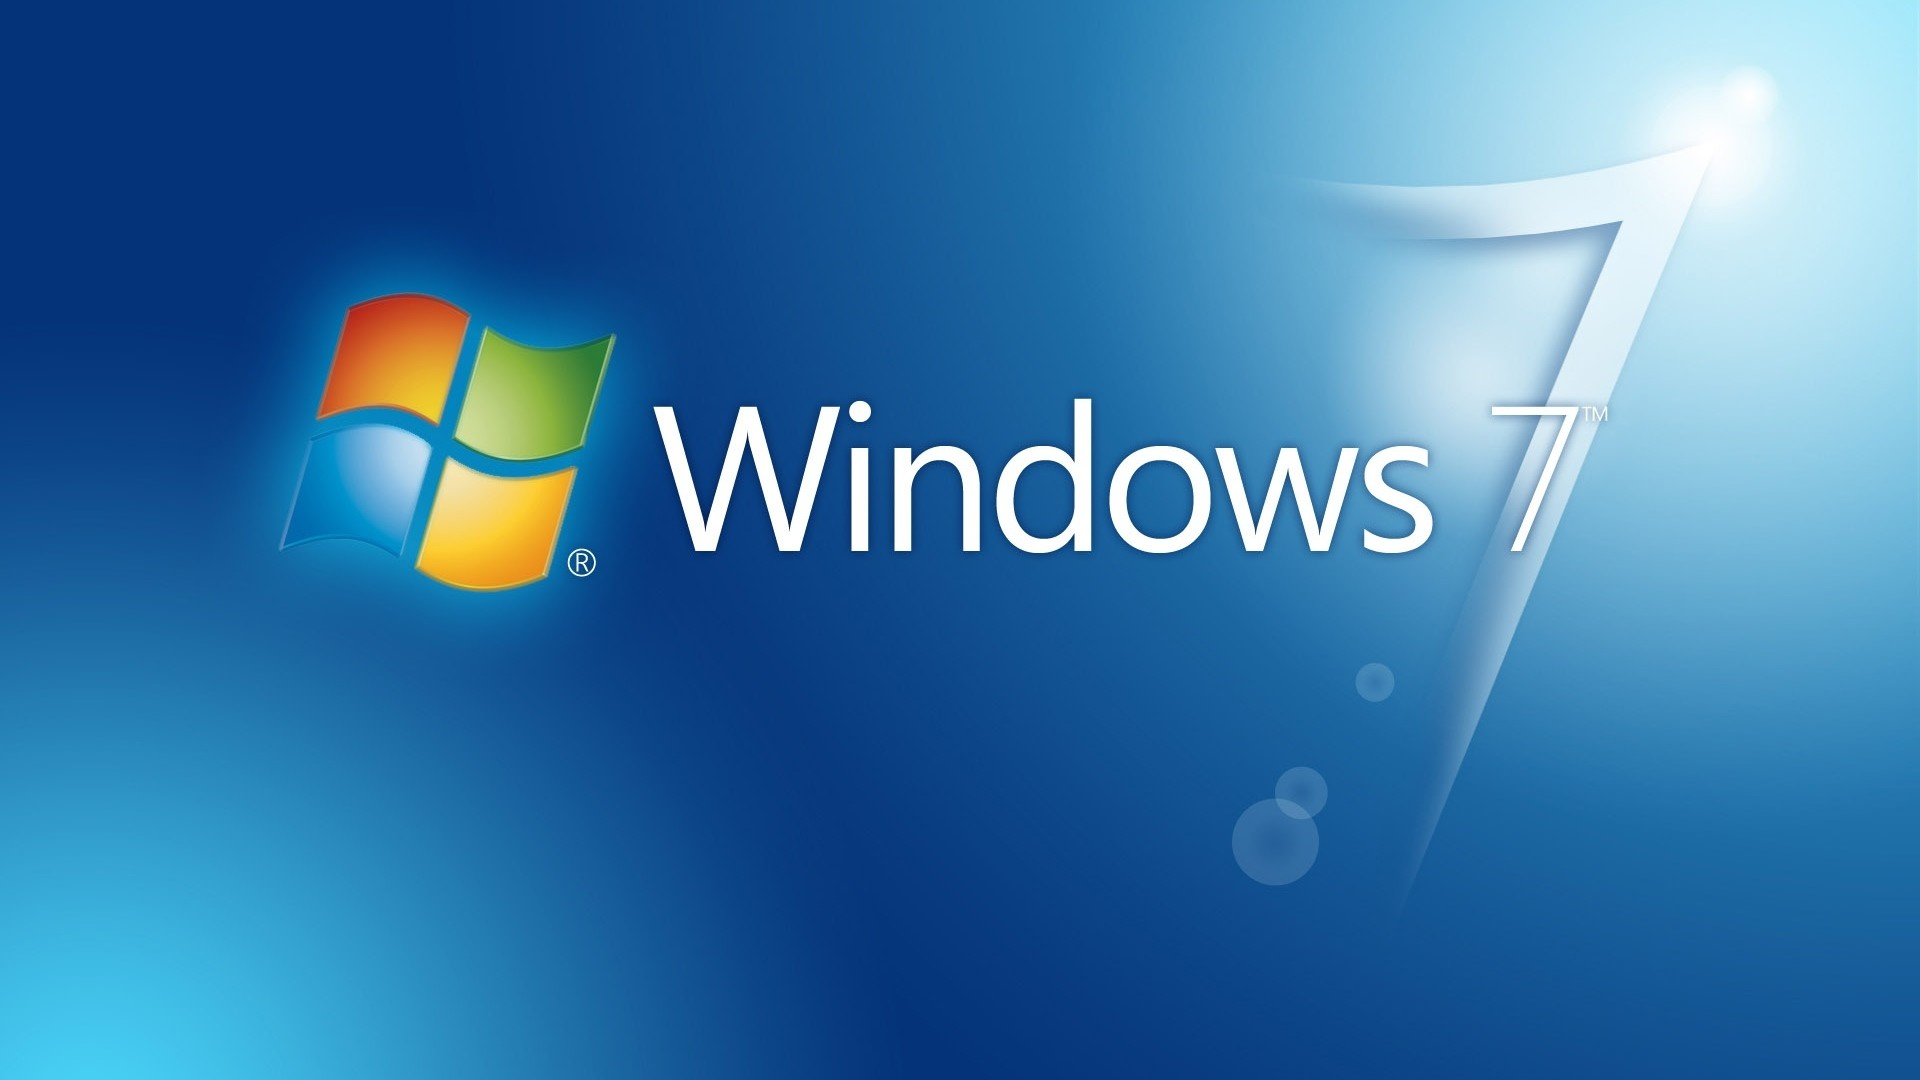 Windows 7 Hd Backgrounds 74 Pictures